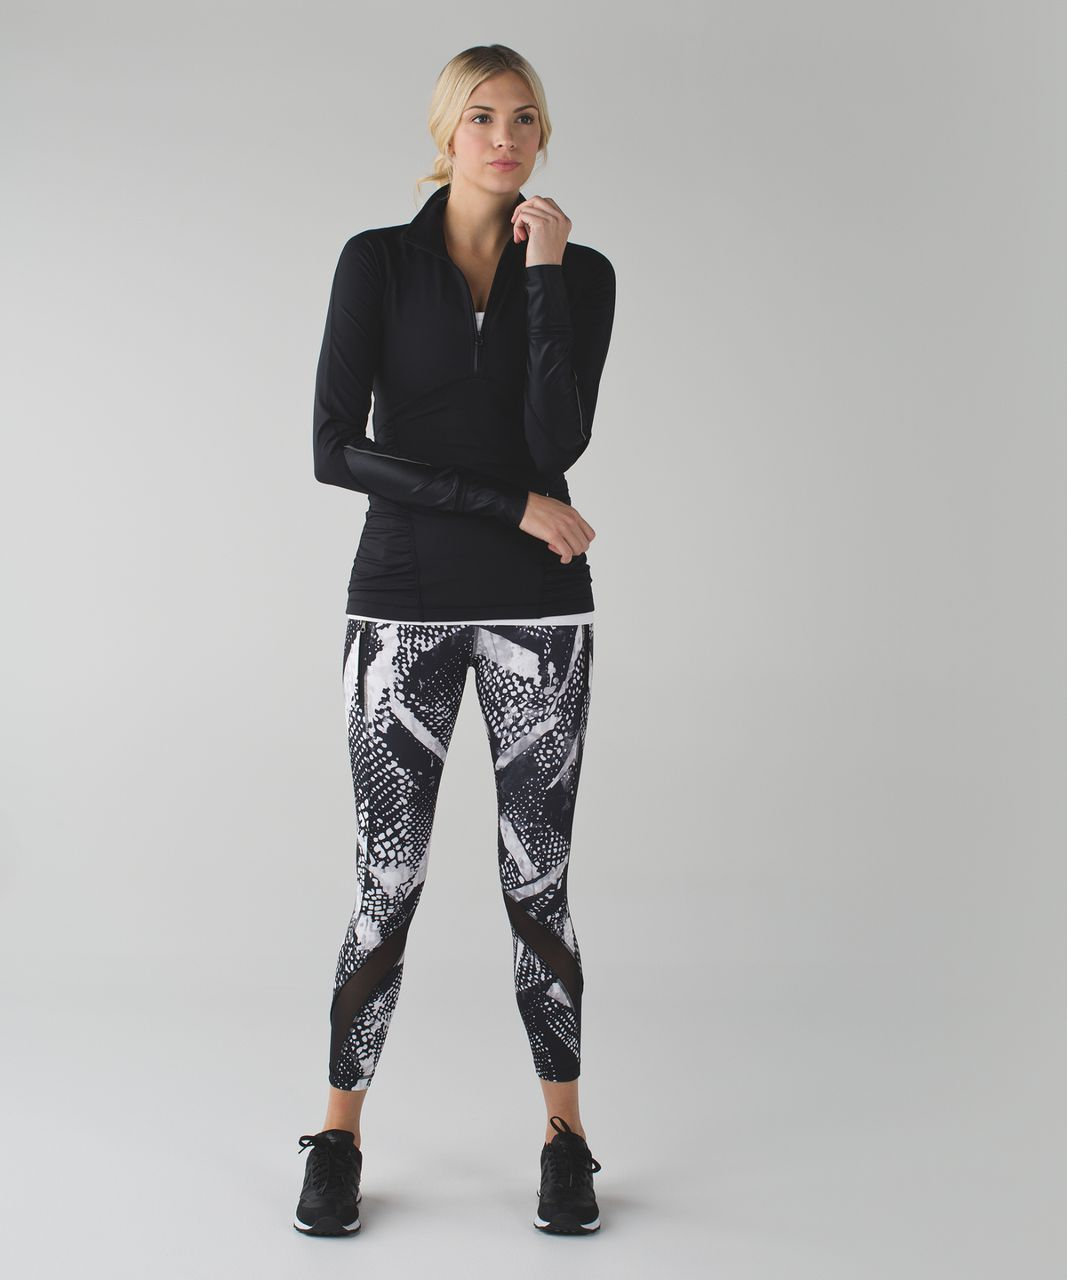 Lululemon Inspire Tight II (Mesh) *Full-On Luxtreme - Static Mist White Black / Black